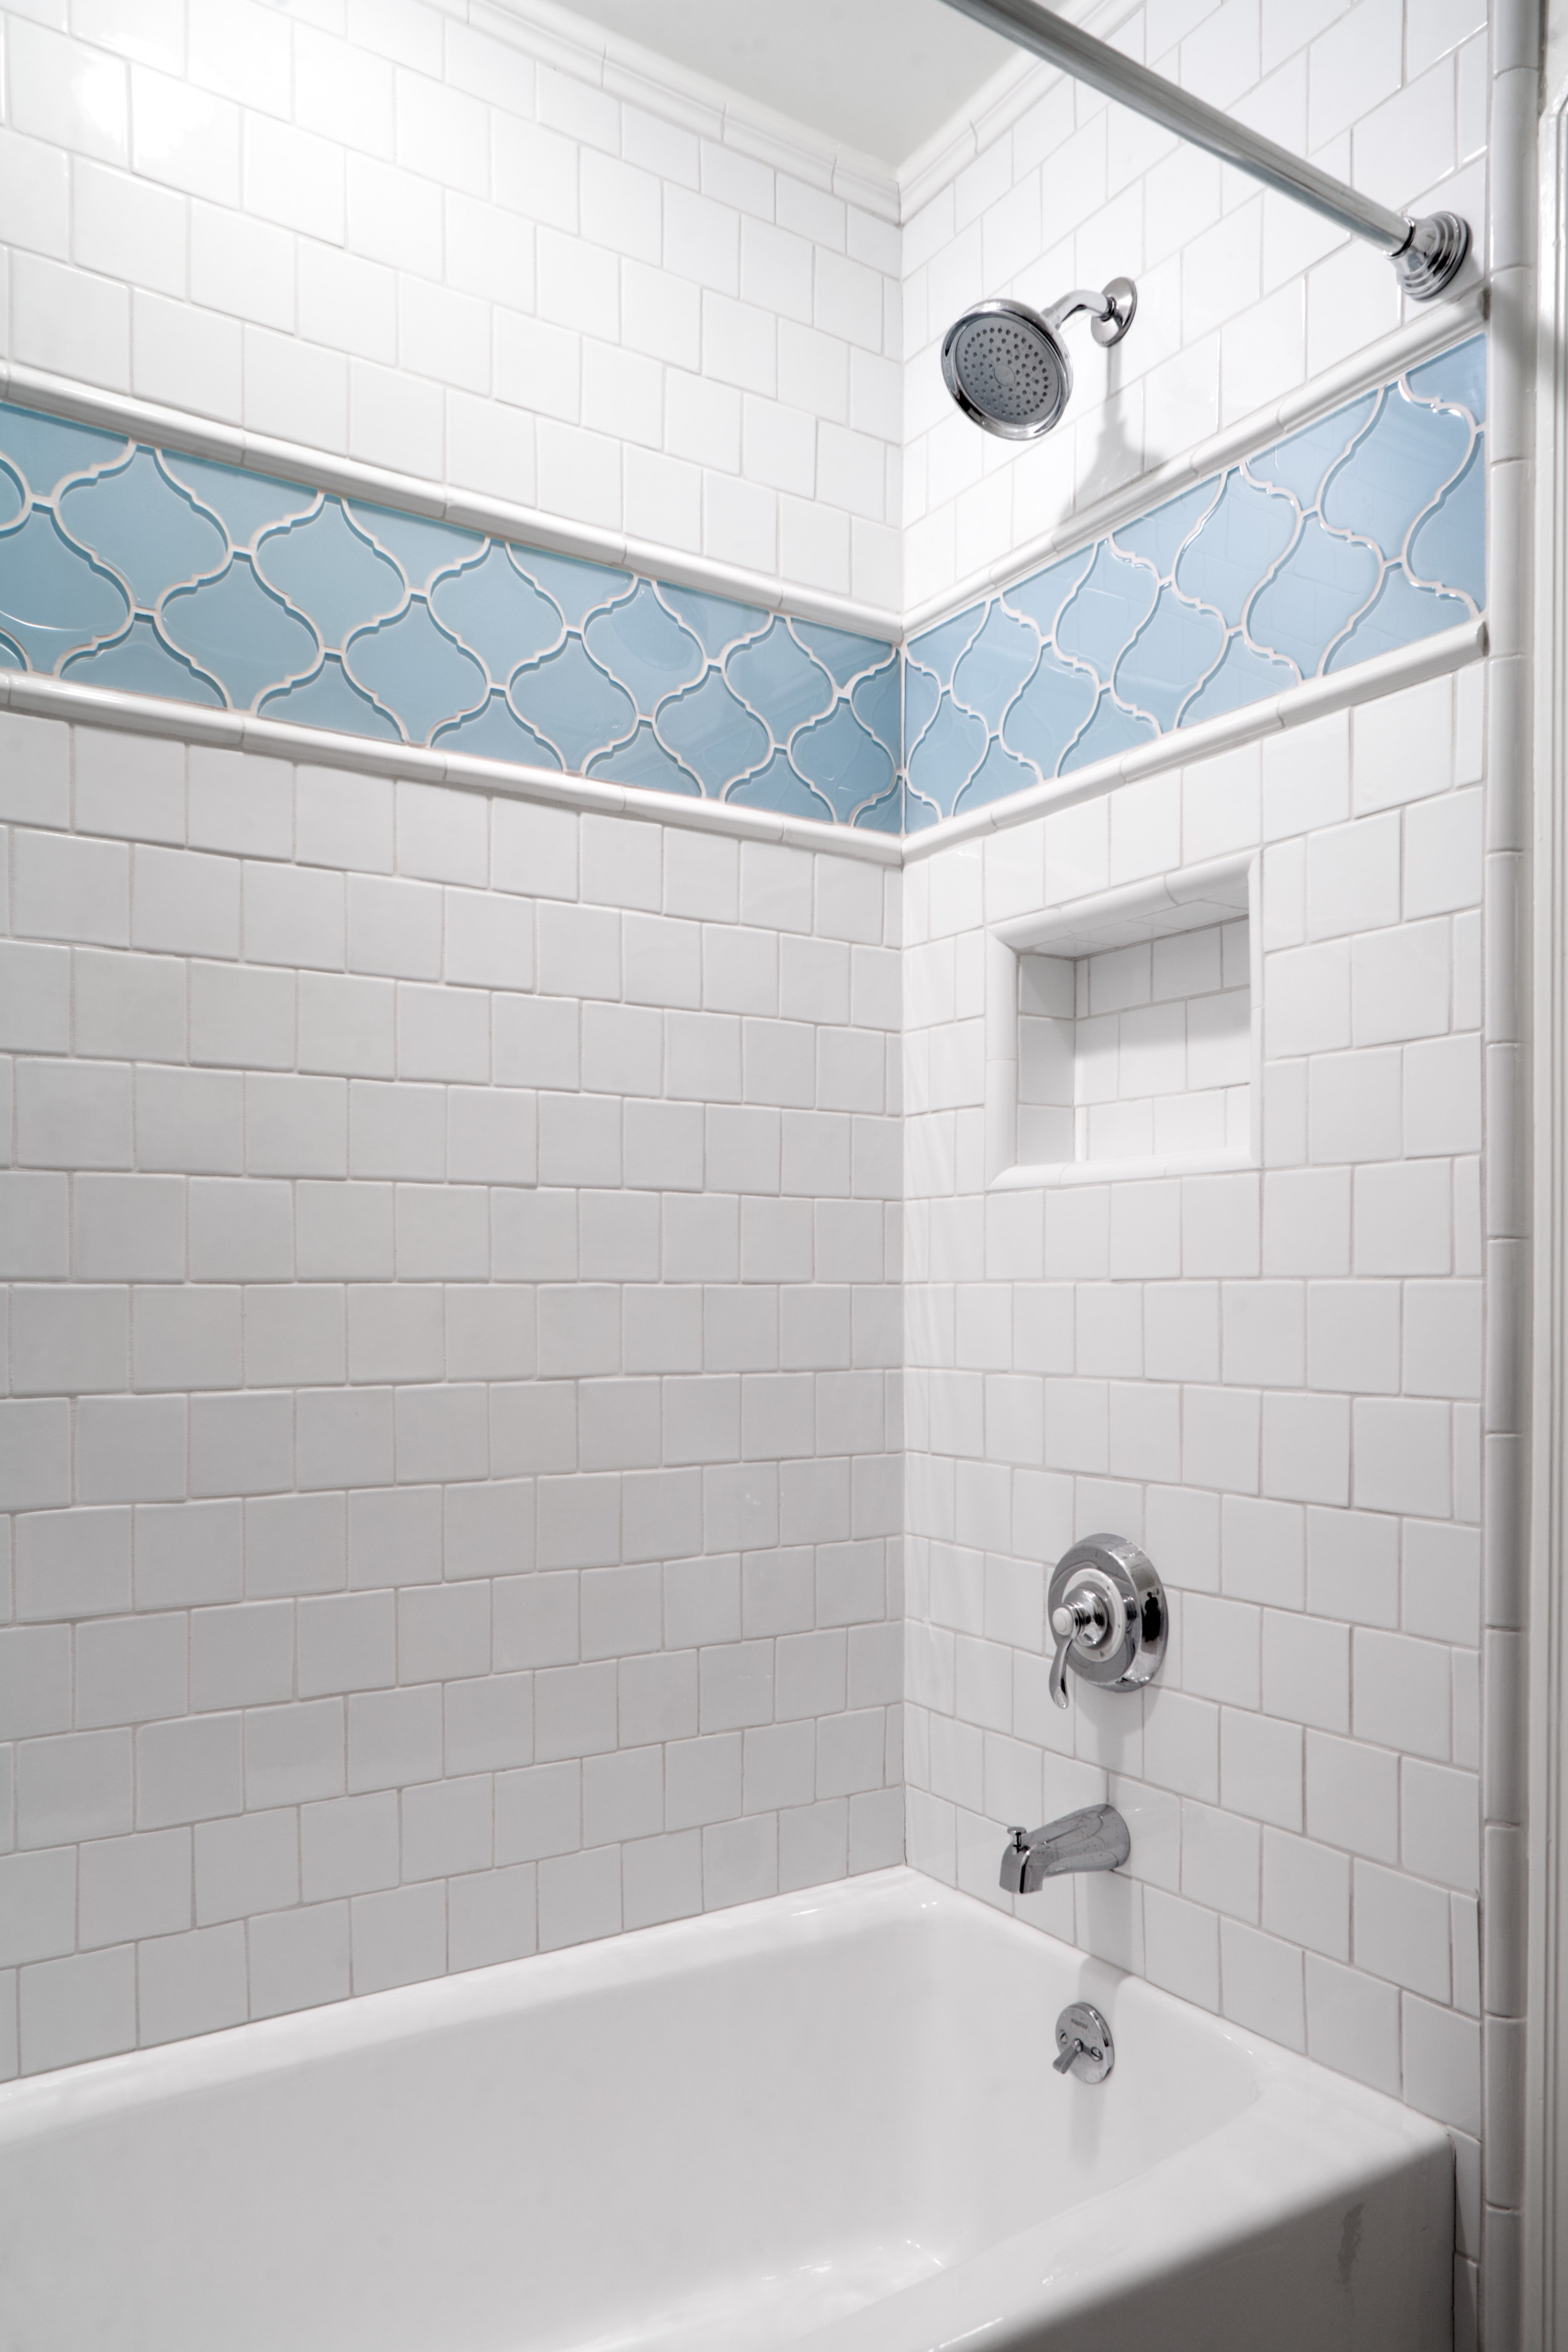 Tiled Shower And Tub For Tiny Bathroom Makeover (Image 13 of 17)